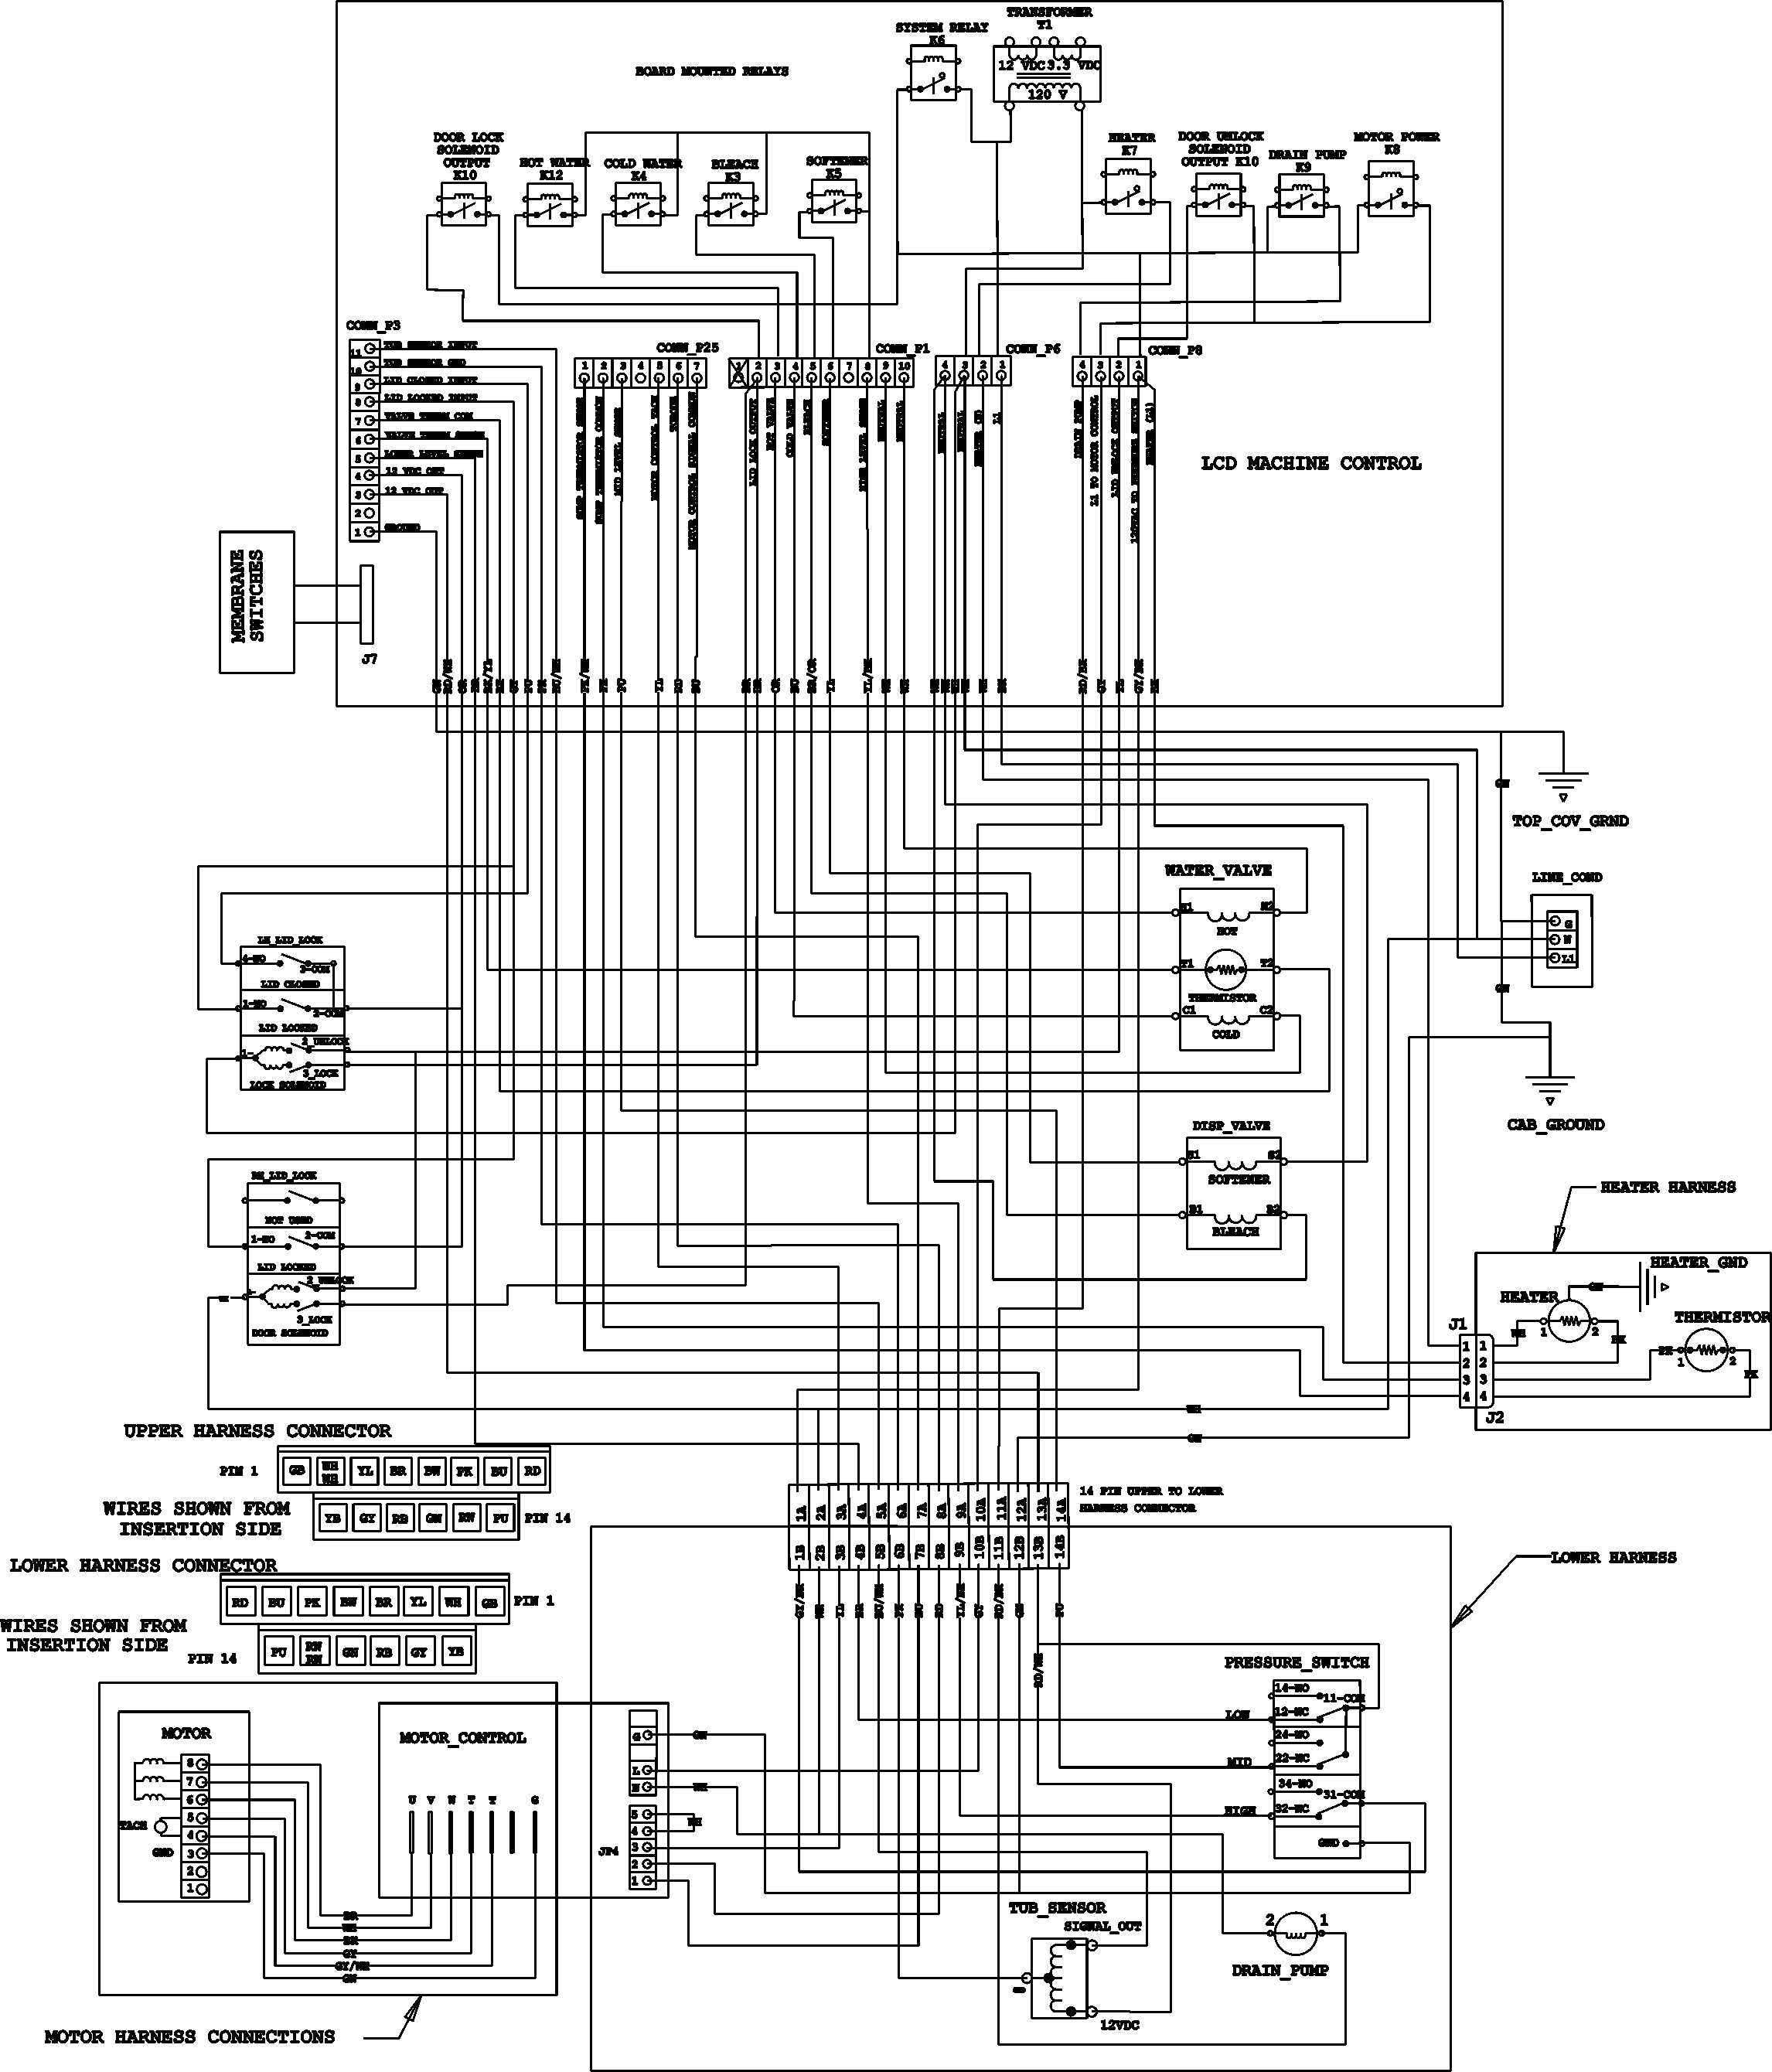 11 Pin Timer Wiring Diagram - All Diagram Schematics